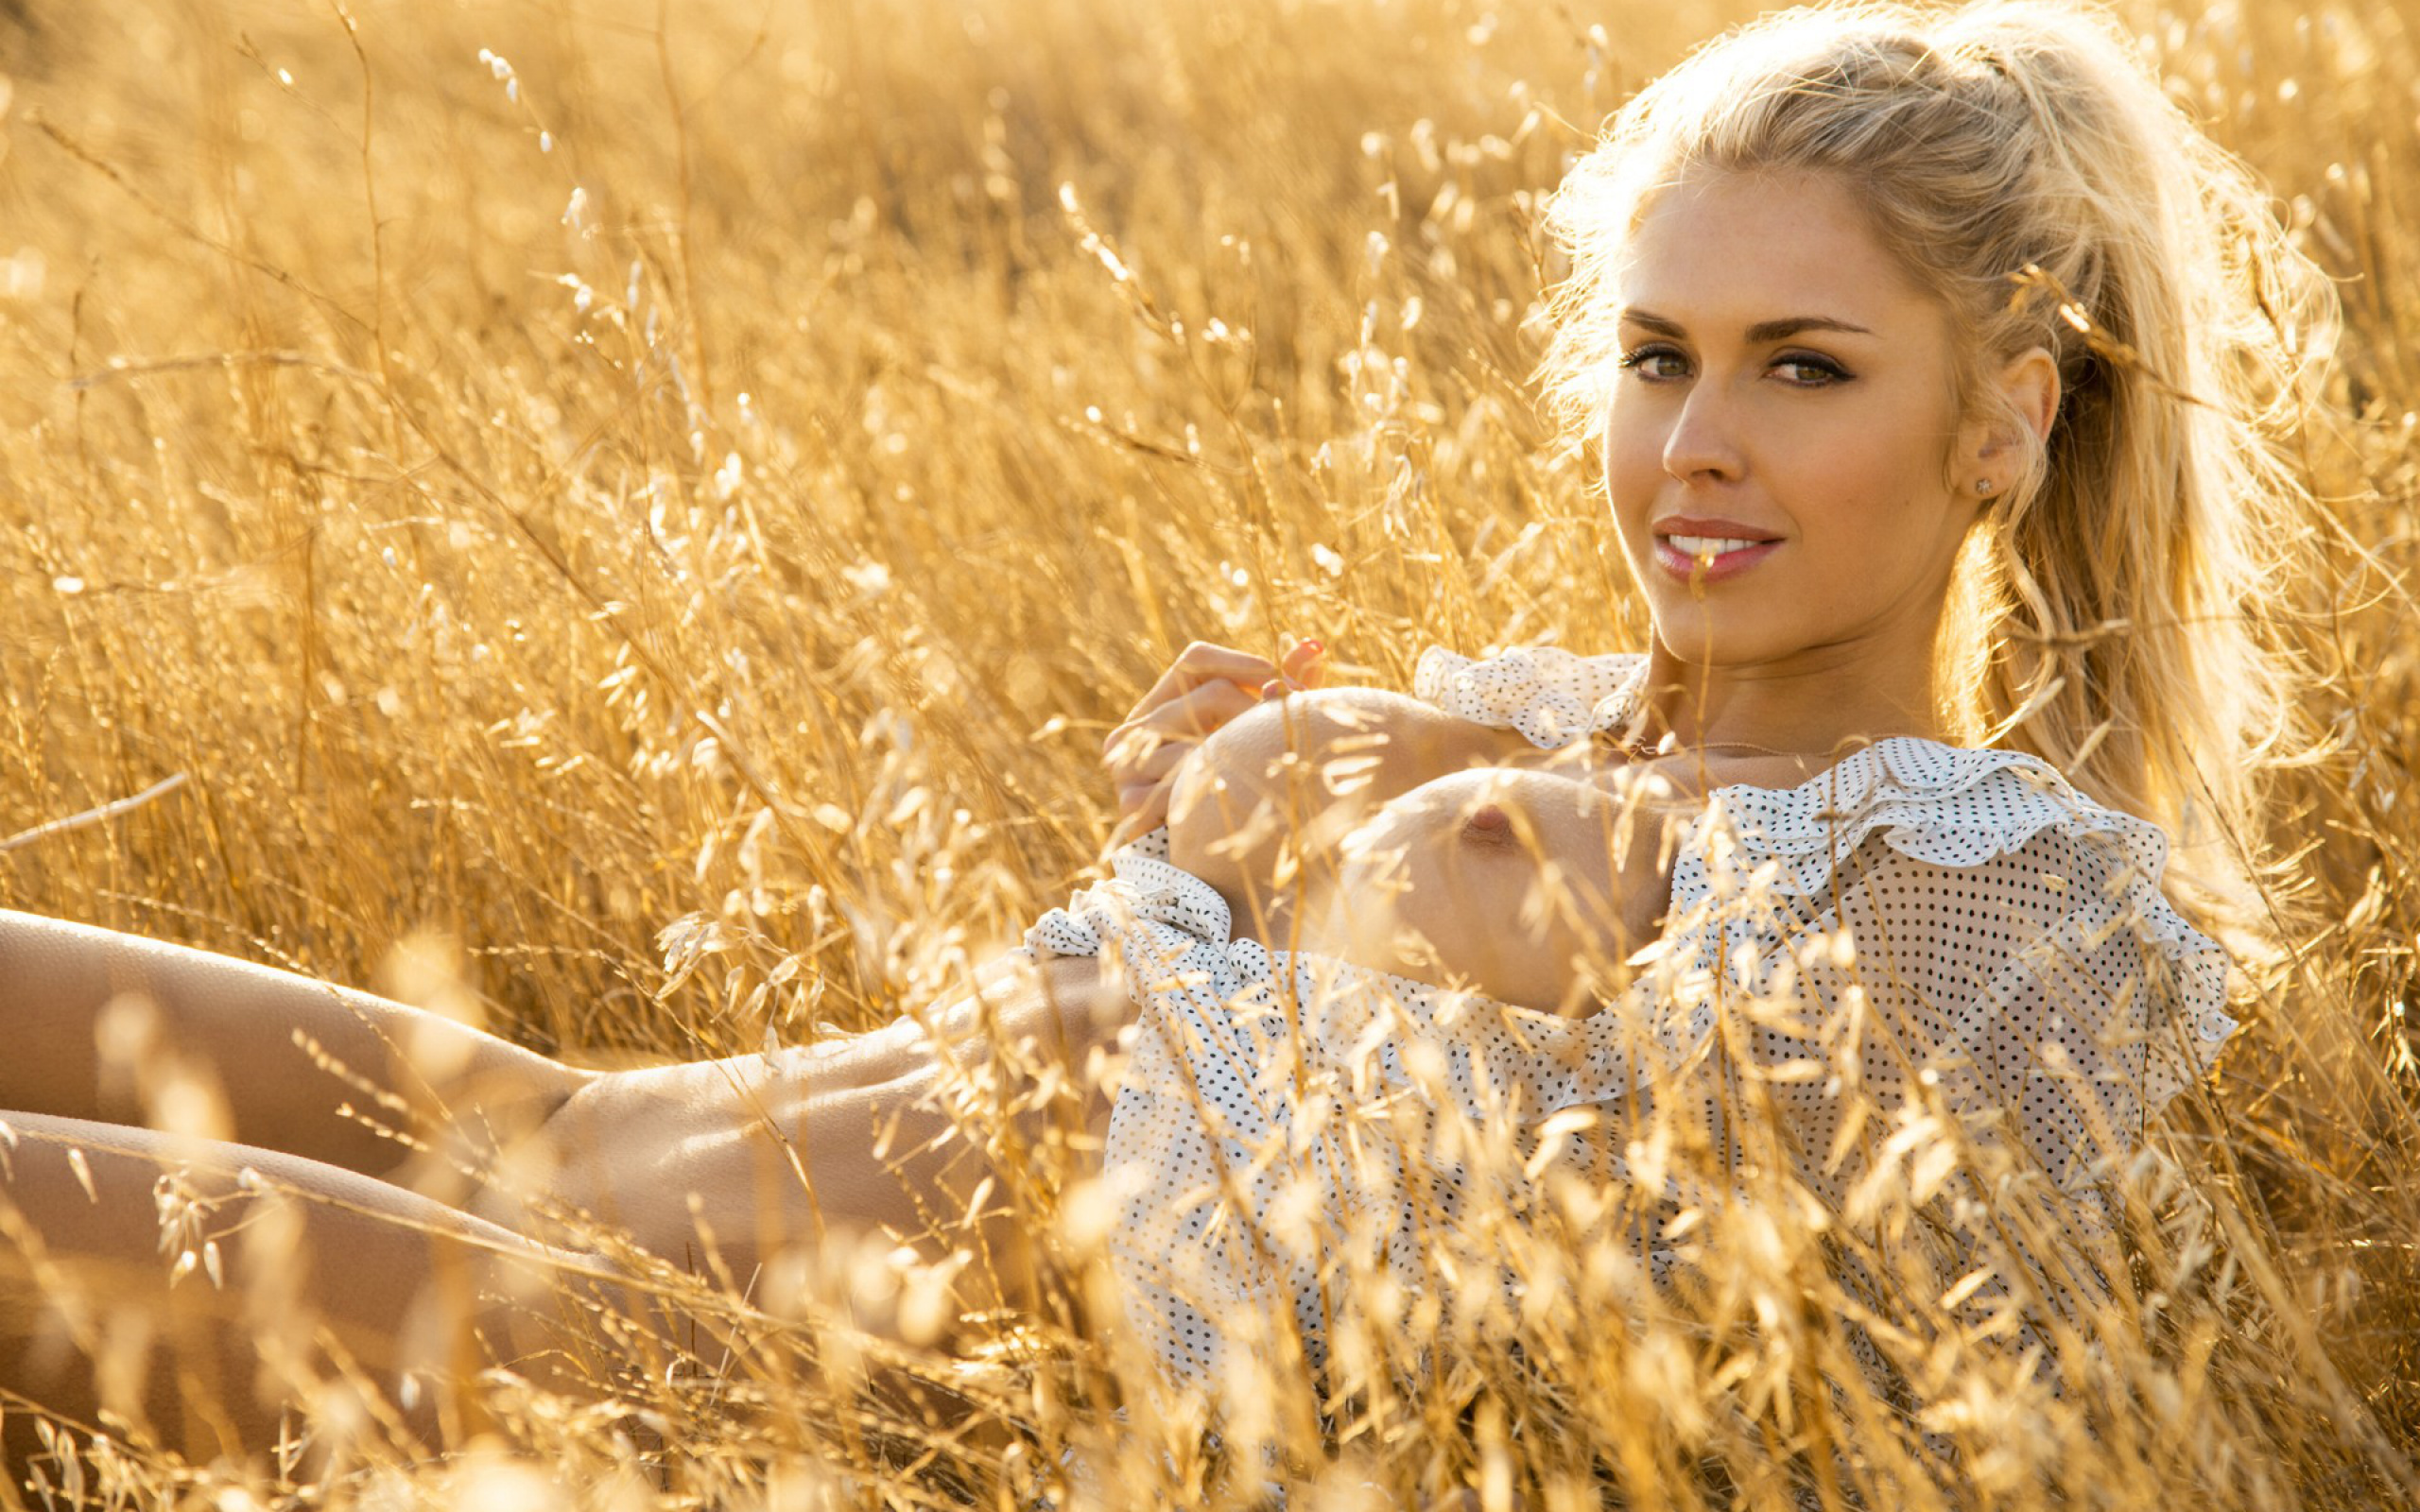 Kayla Rae Reid Wallpapers Images Photos Pictures Backgrounds-4364